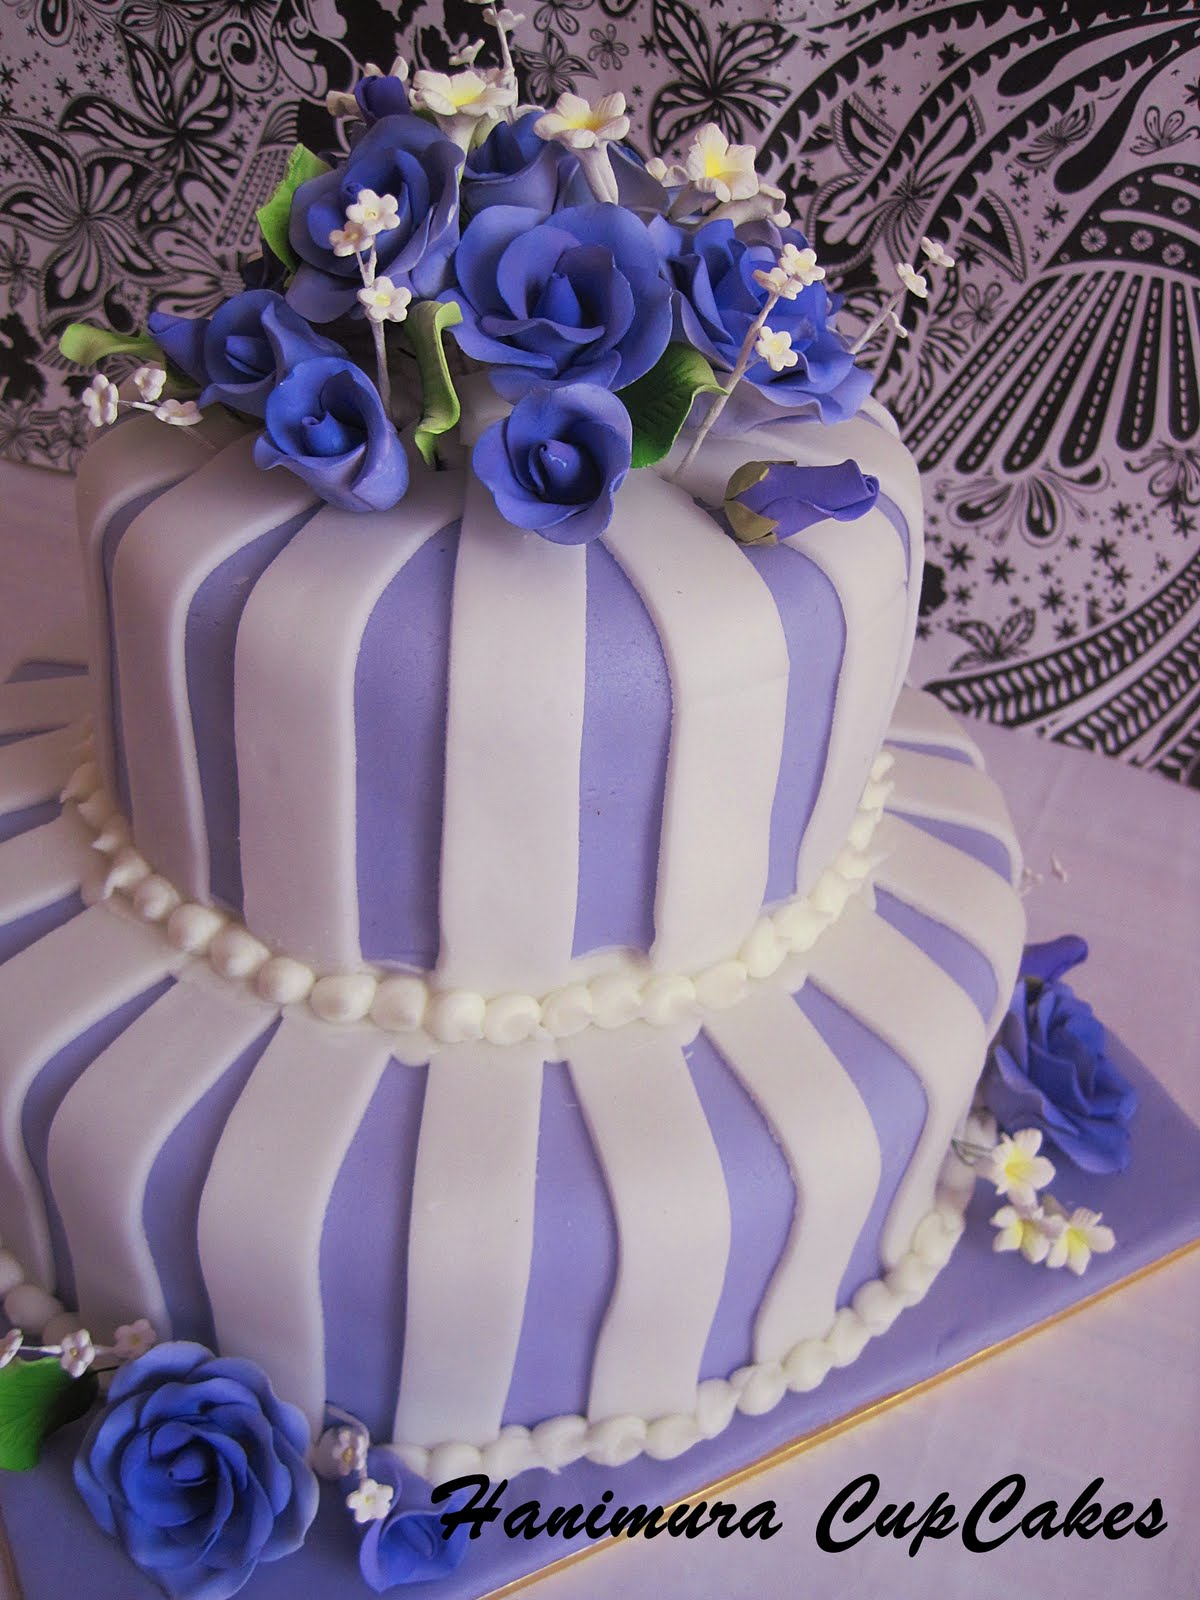 Hanimura CupCake Purple 2 tier Wedding Cake